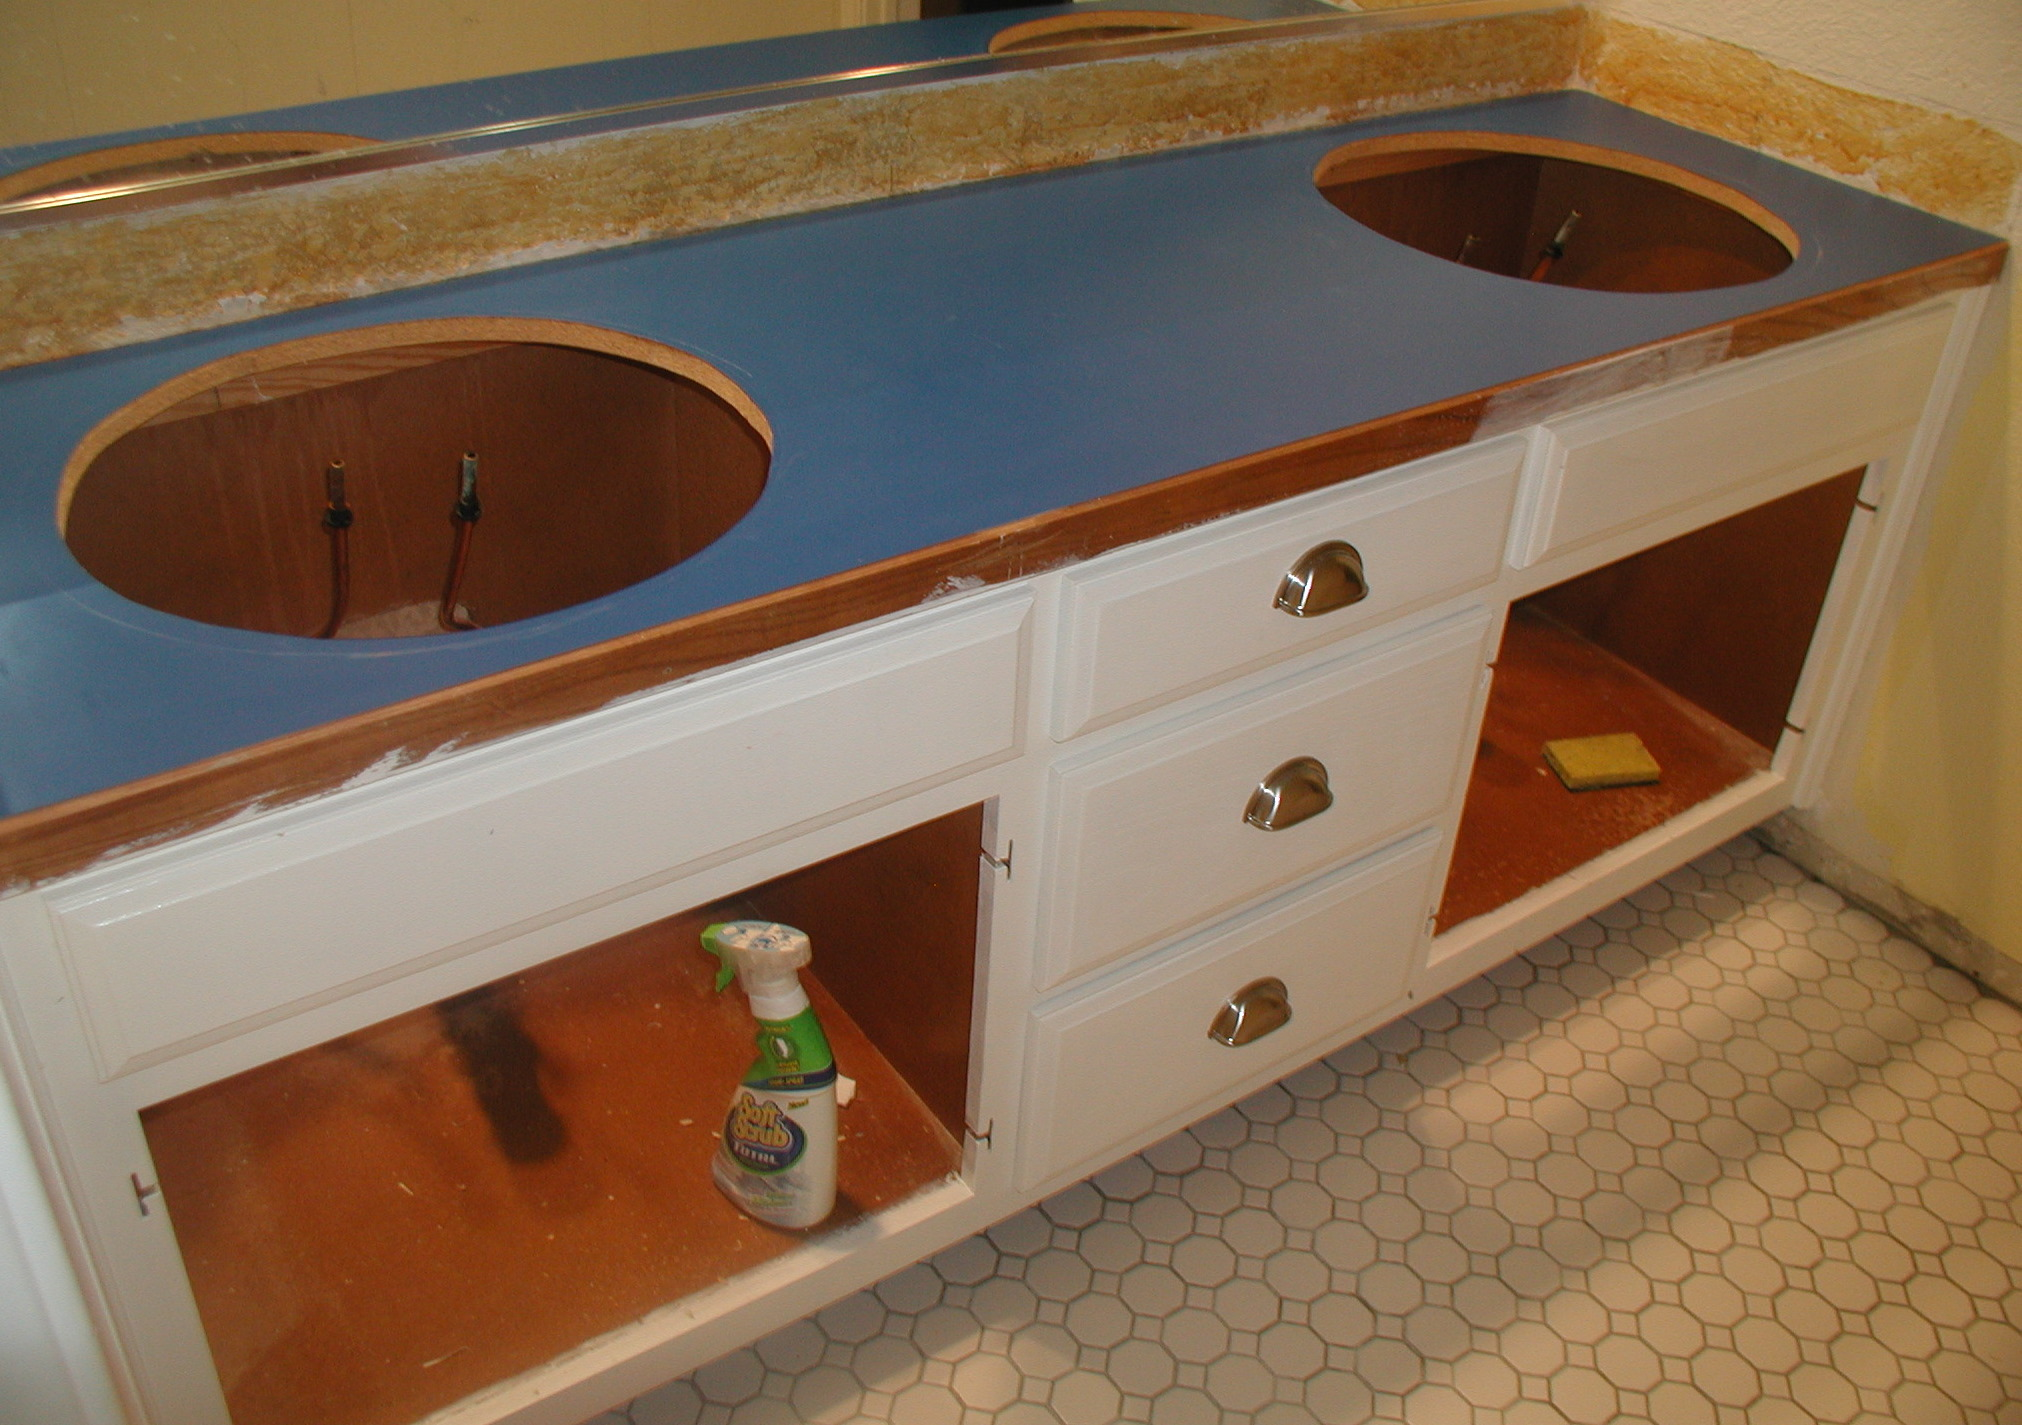 How To Cut Sink In Laminate Countertop Project Bathroom Vanity With Laminate Over Laminate